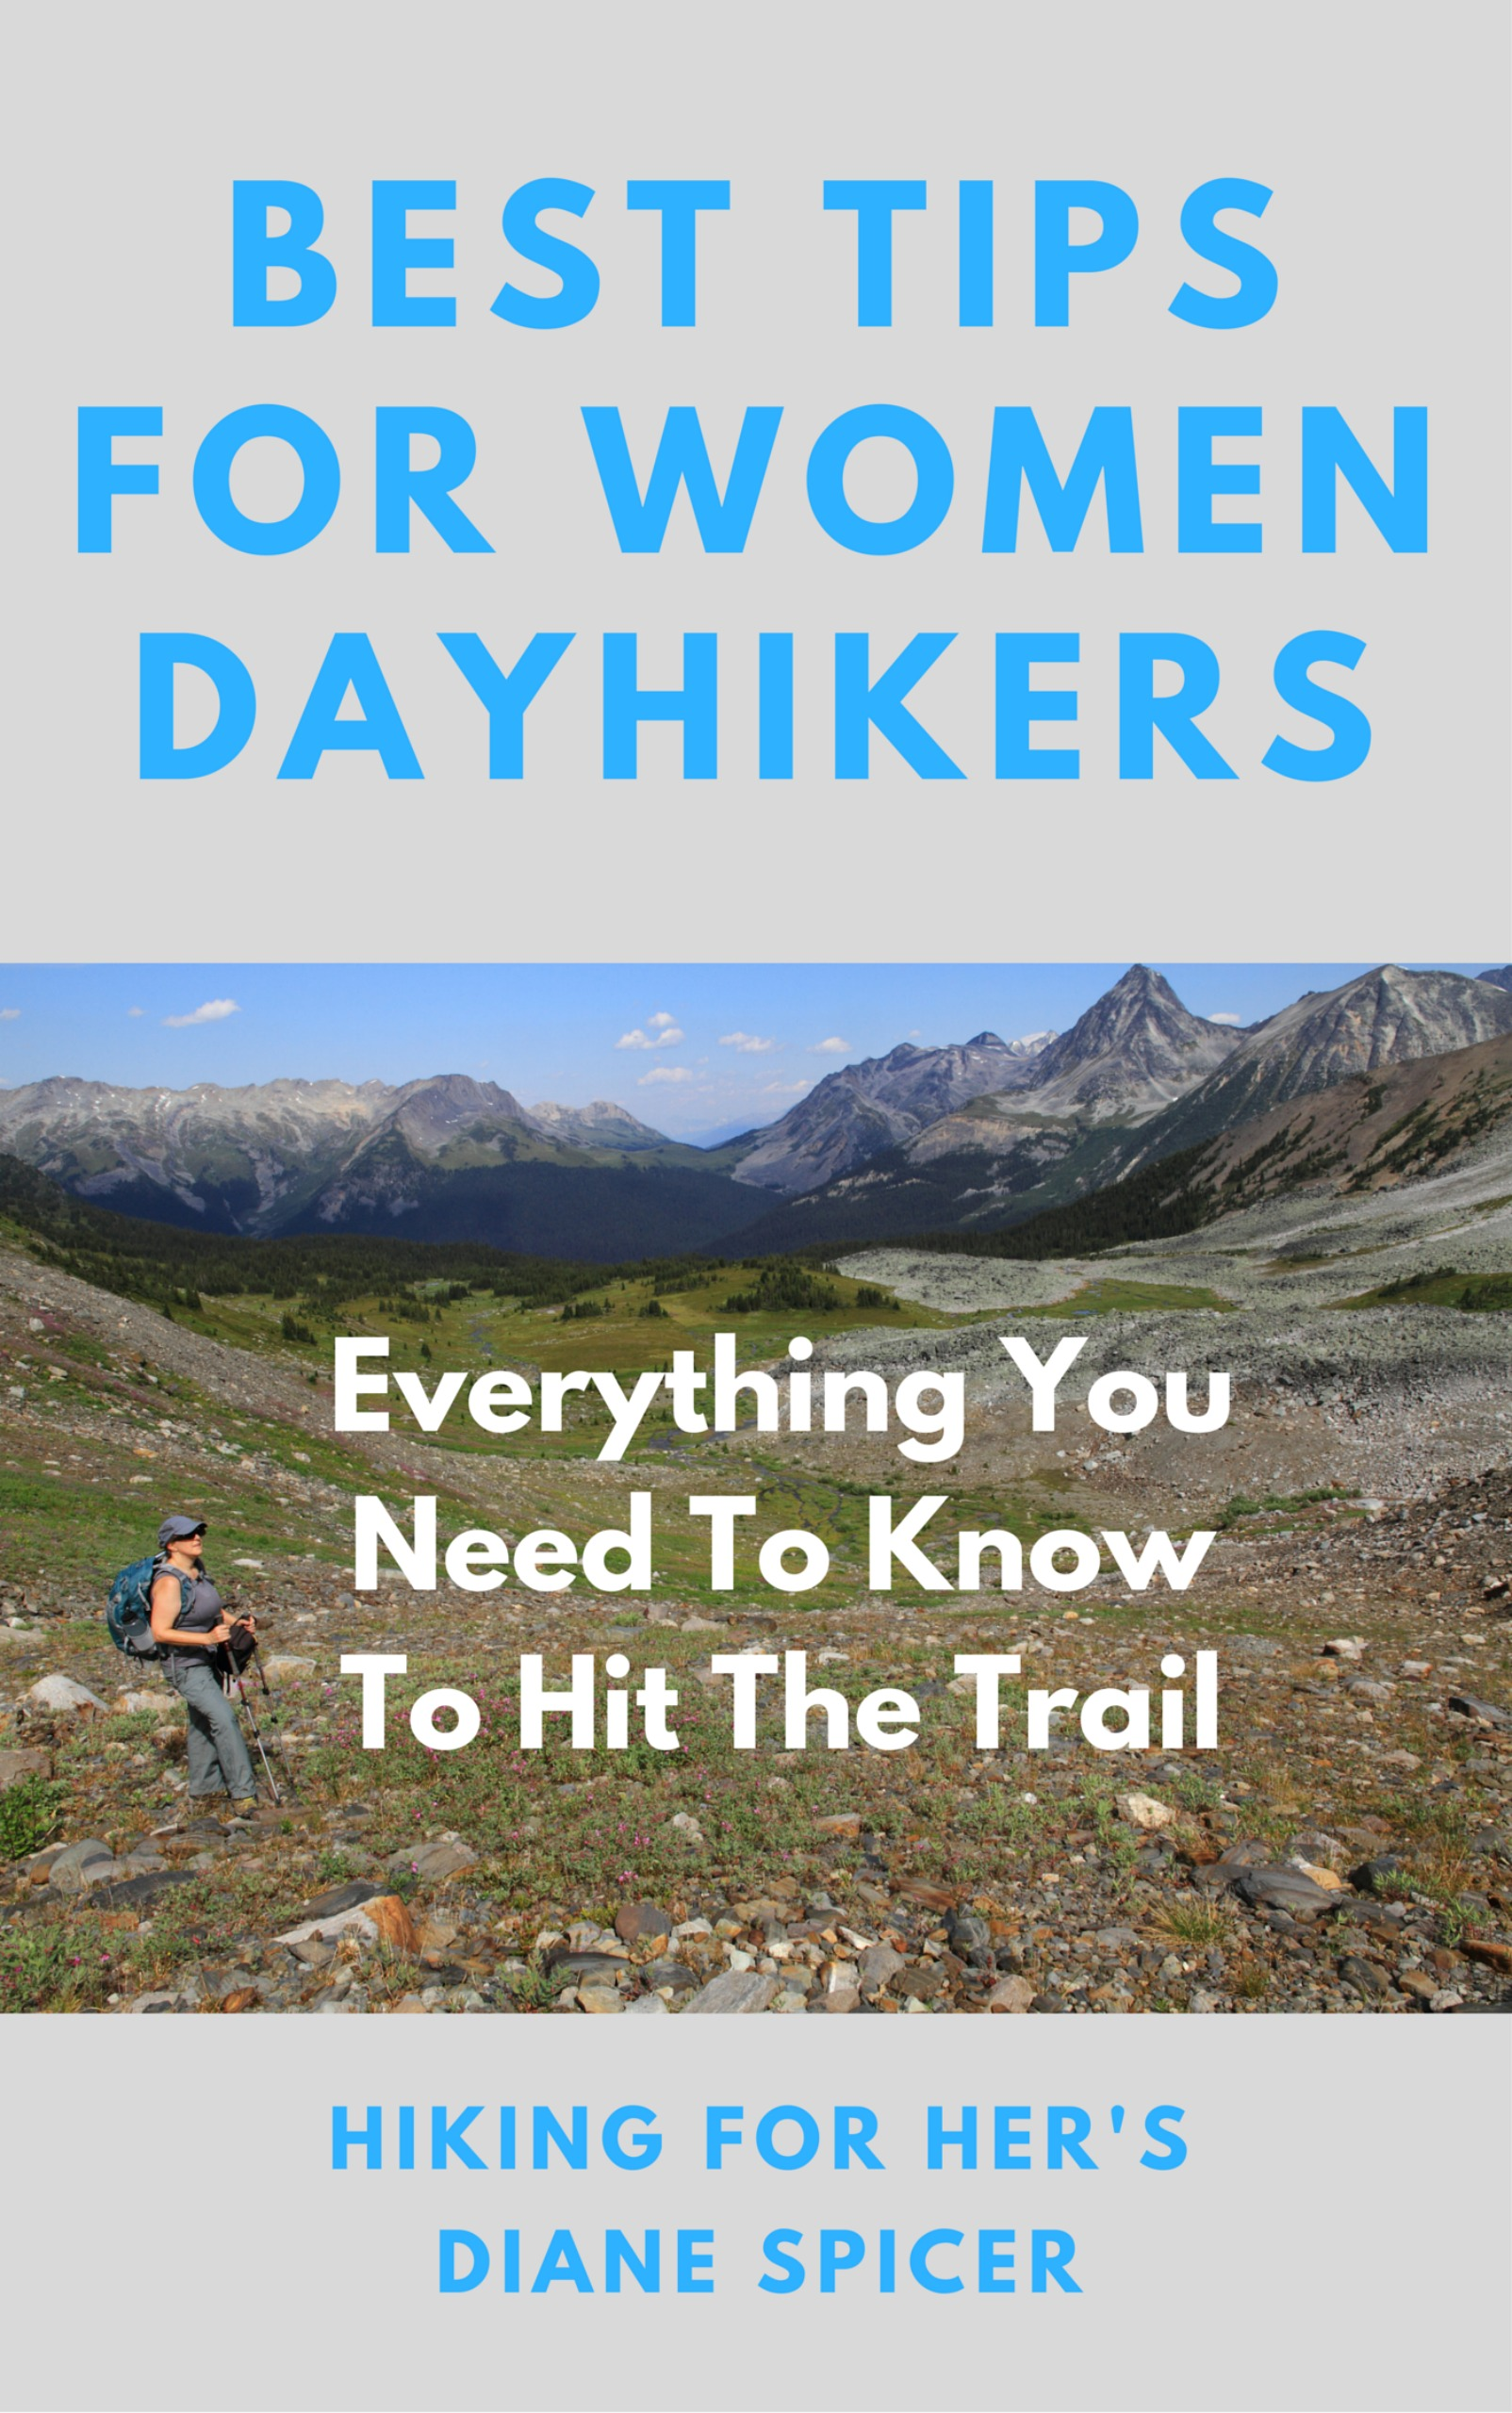 Hikers love the best tips, and you can find everything you need to know to hit the trail all in one place. Check it out!